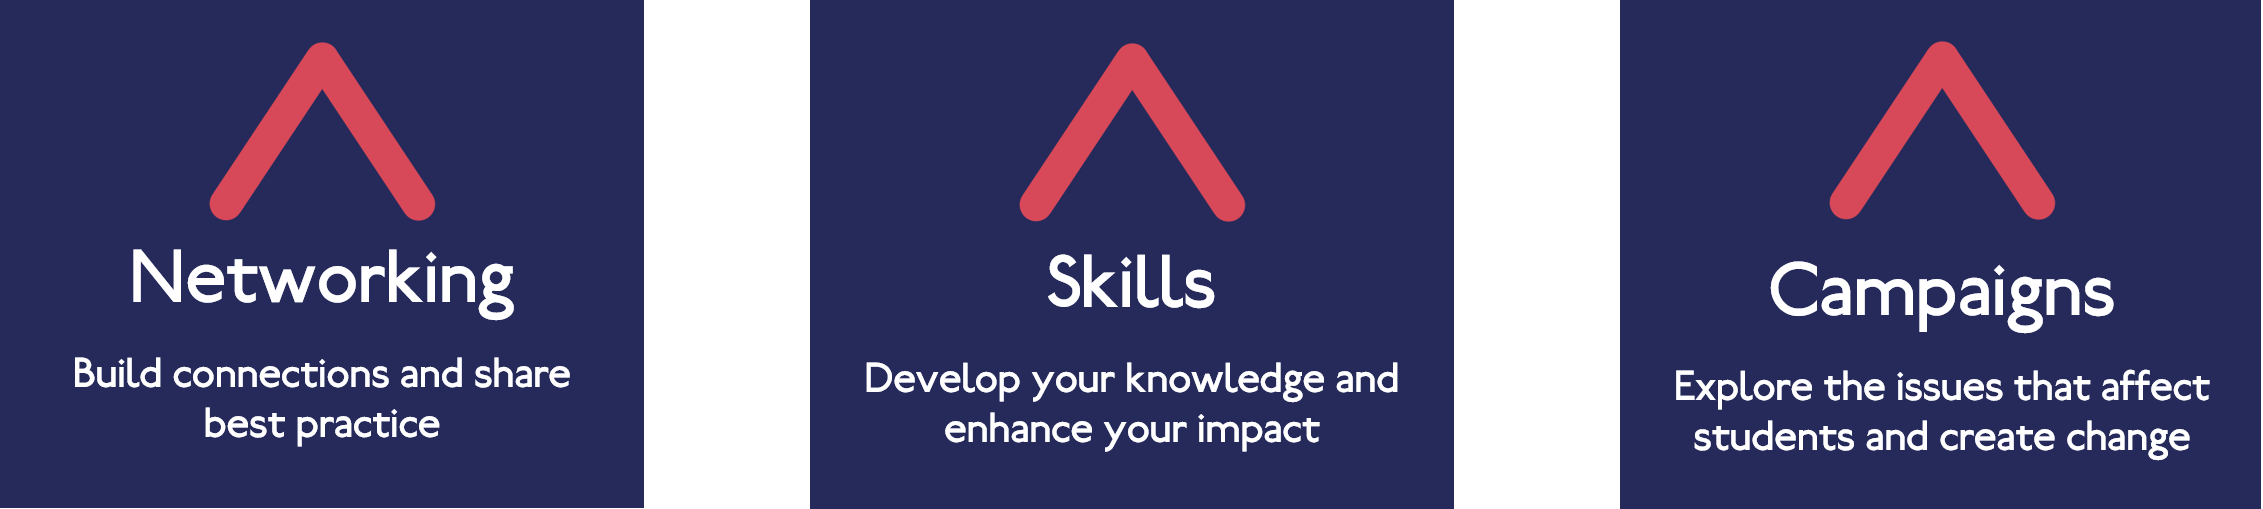 Networking Skills Campaigns